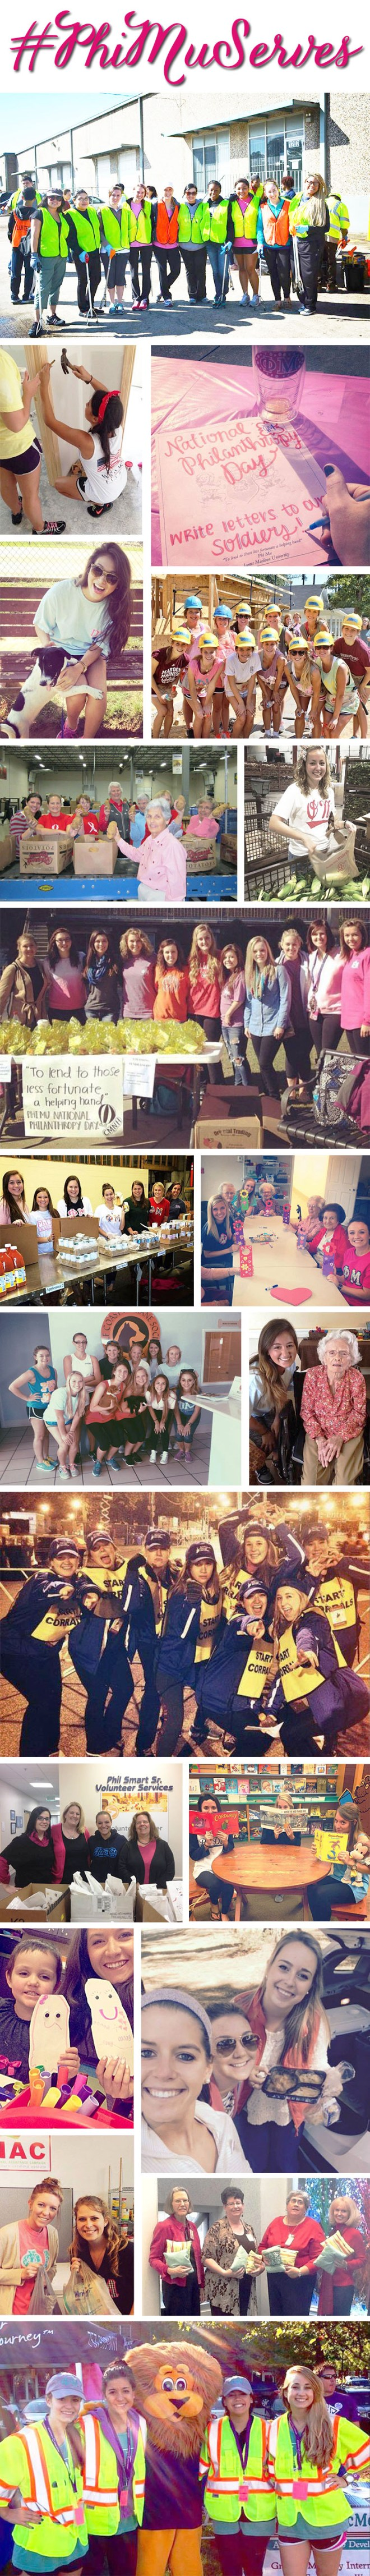 #PhiMuServes